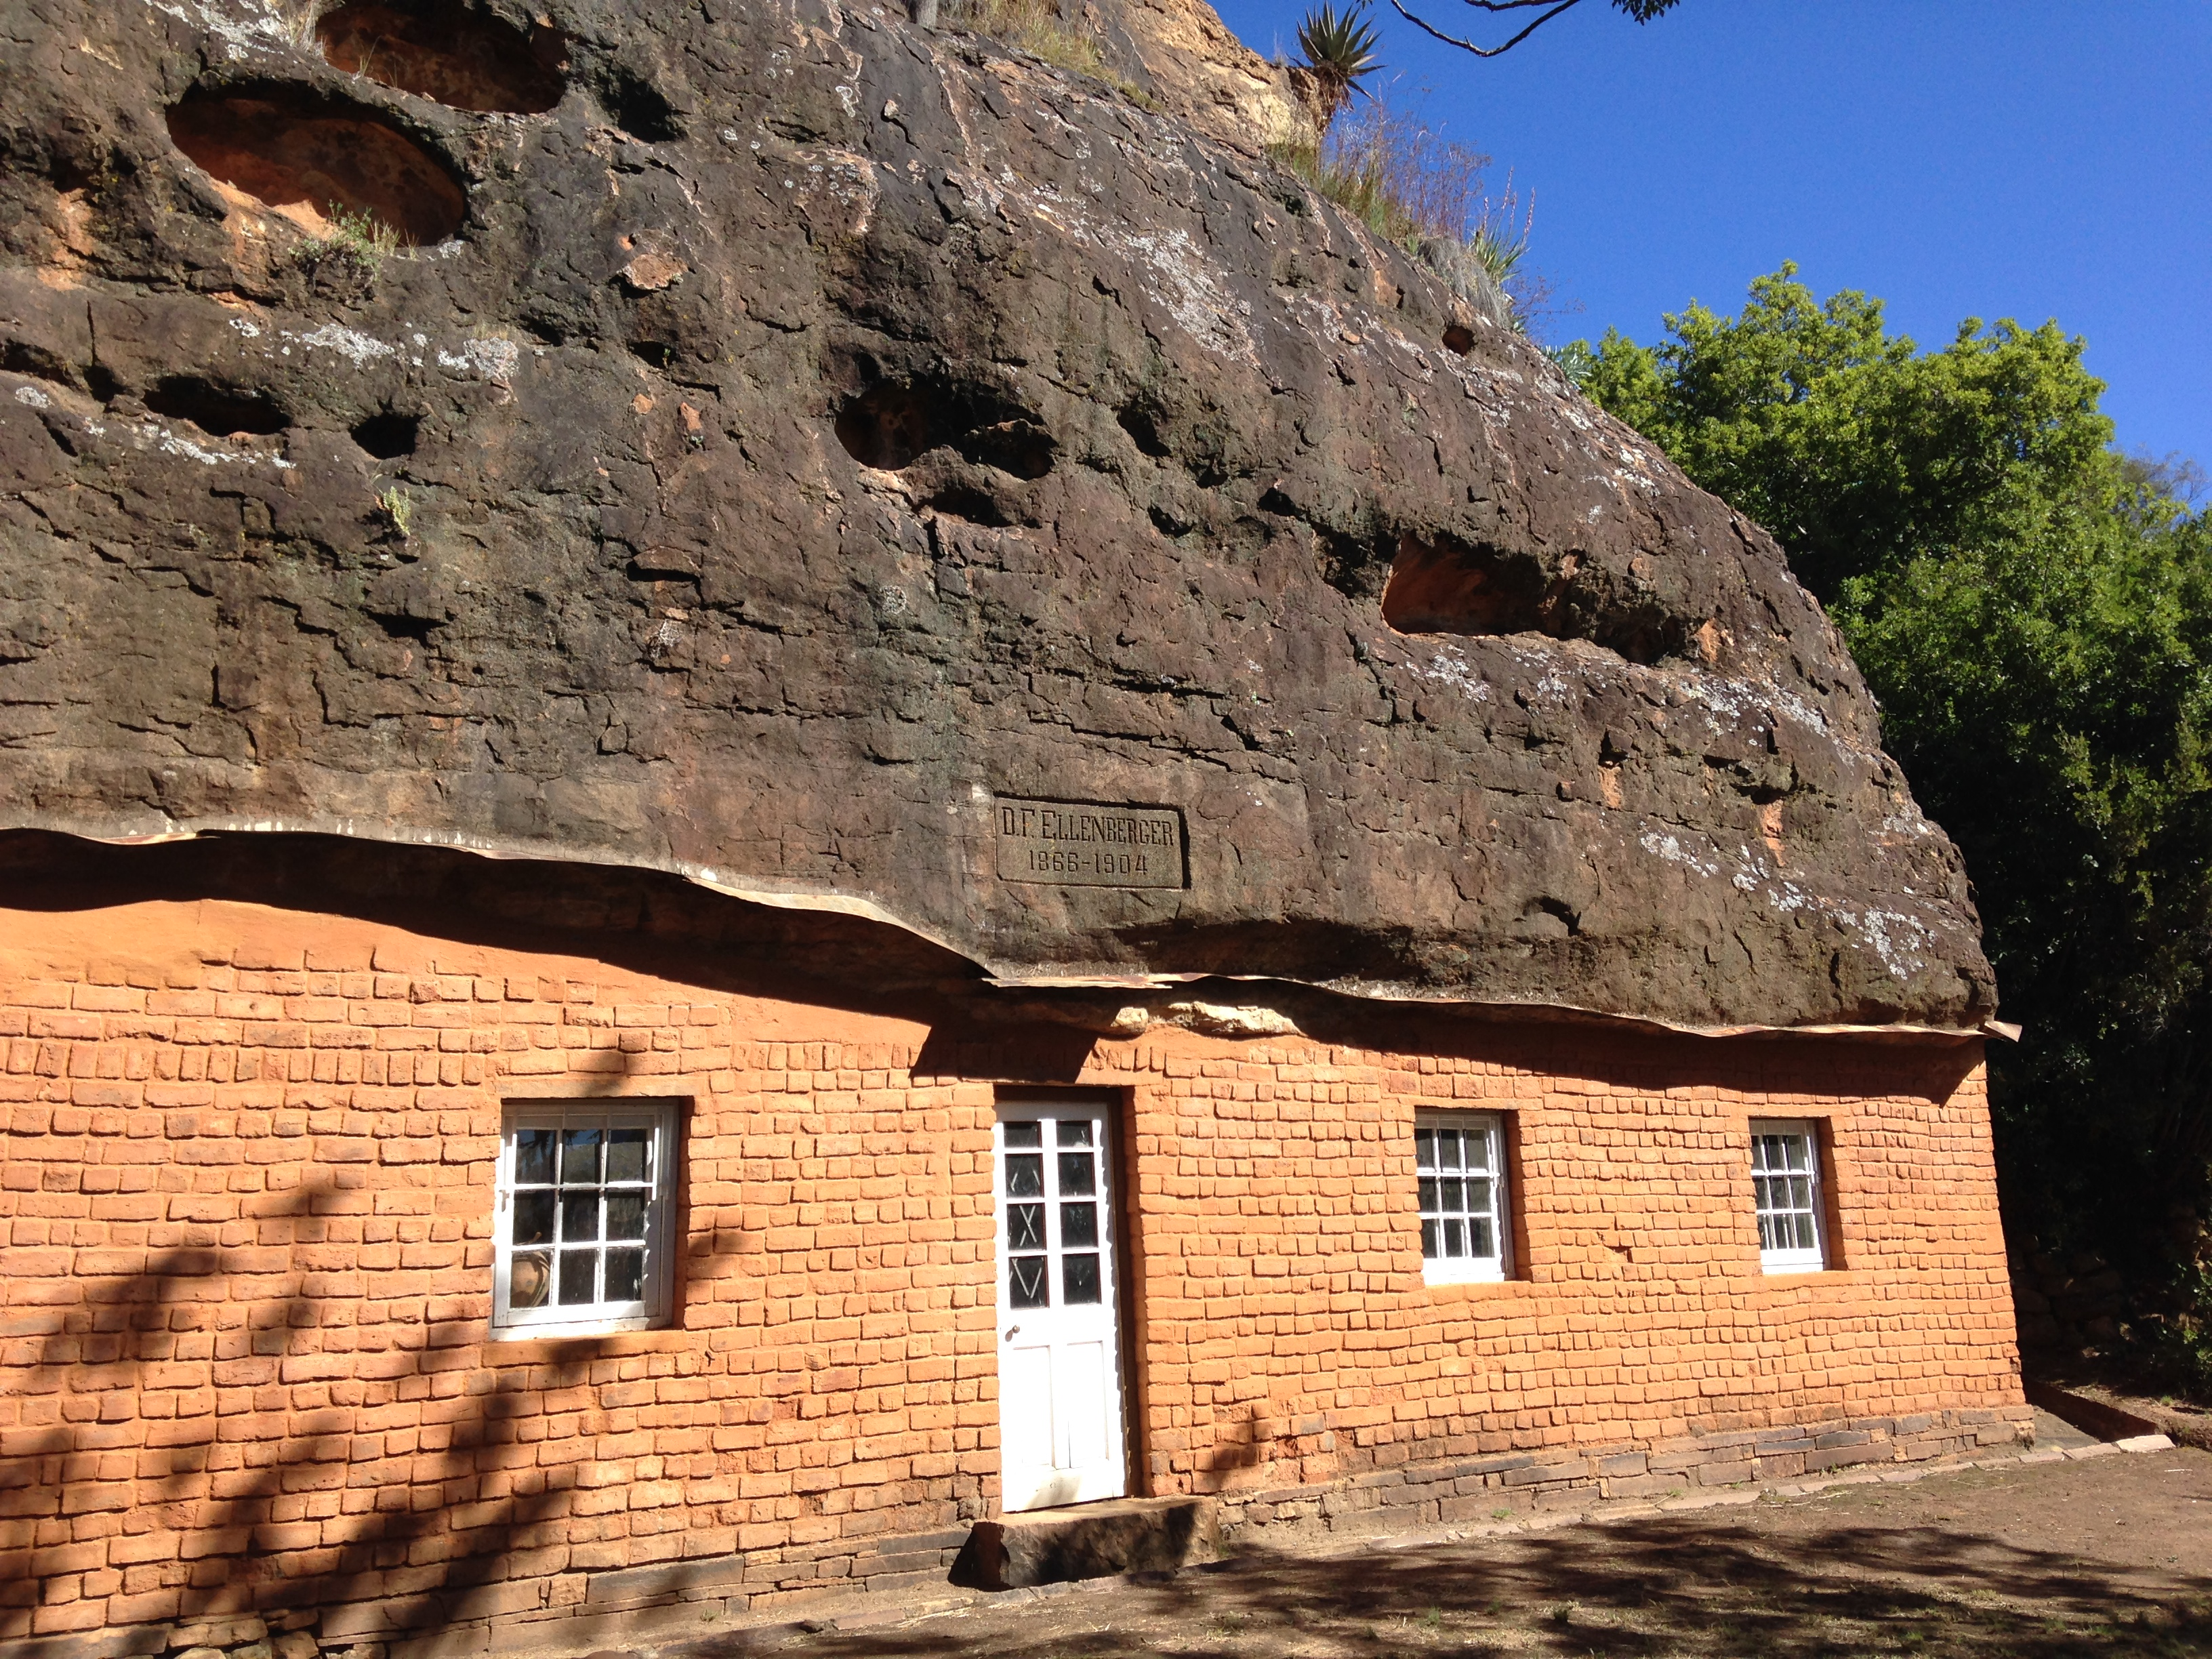 Masitise Cave House Museum Quthing, Hiking & Pony Trekking in the Kingdom of Lesotho - Nonbillable Hours